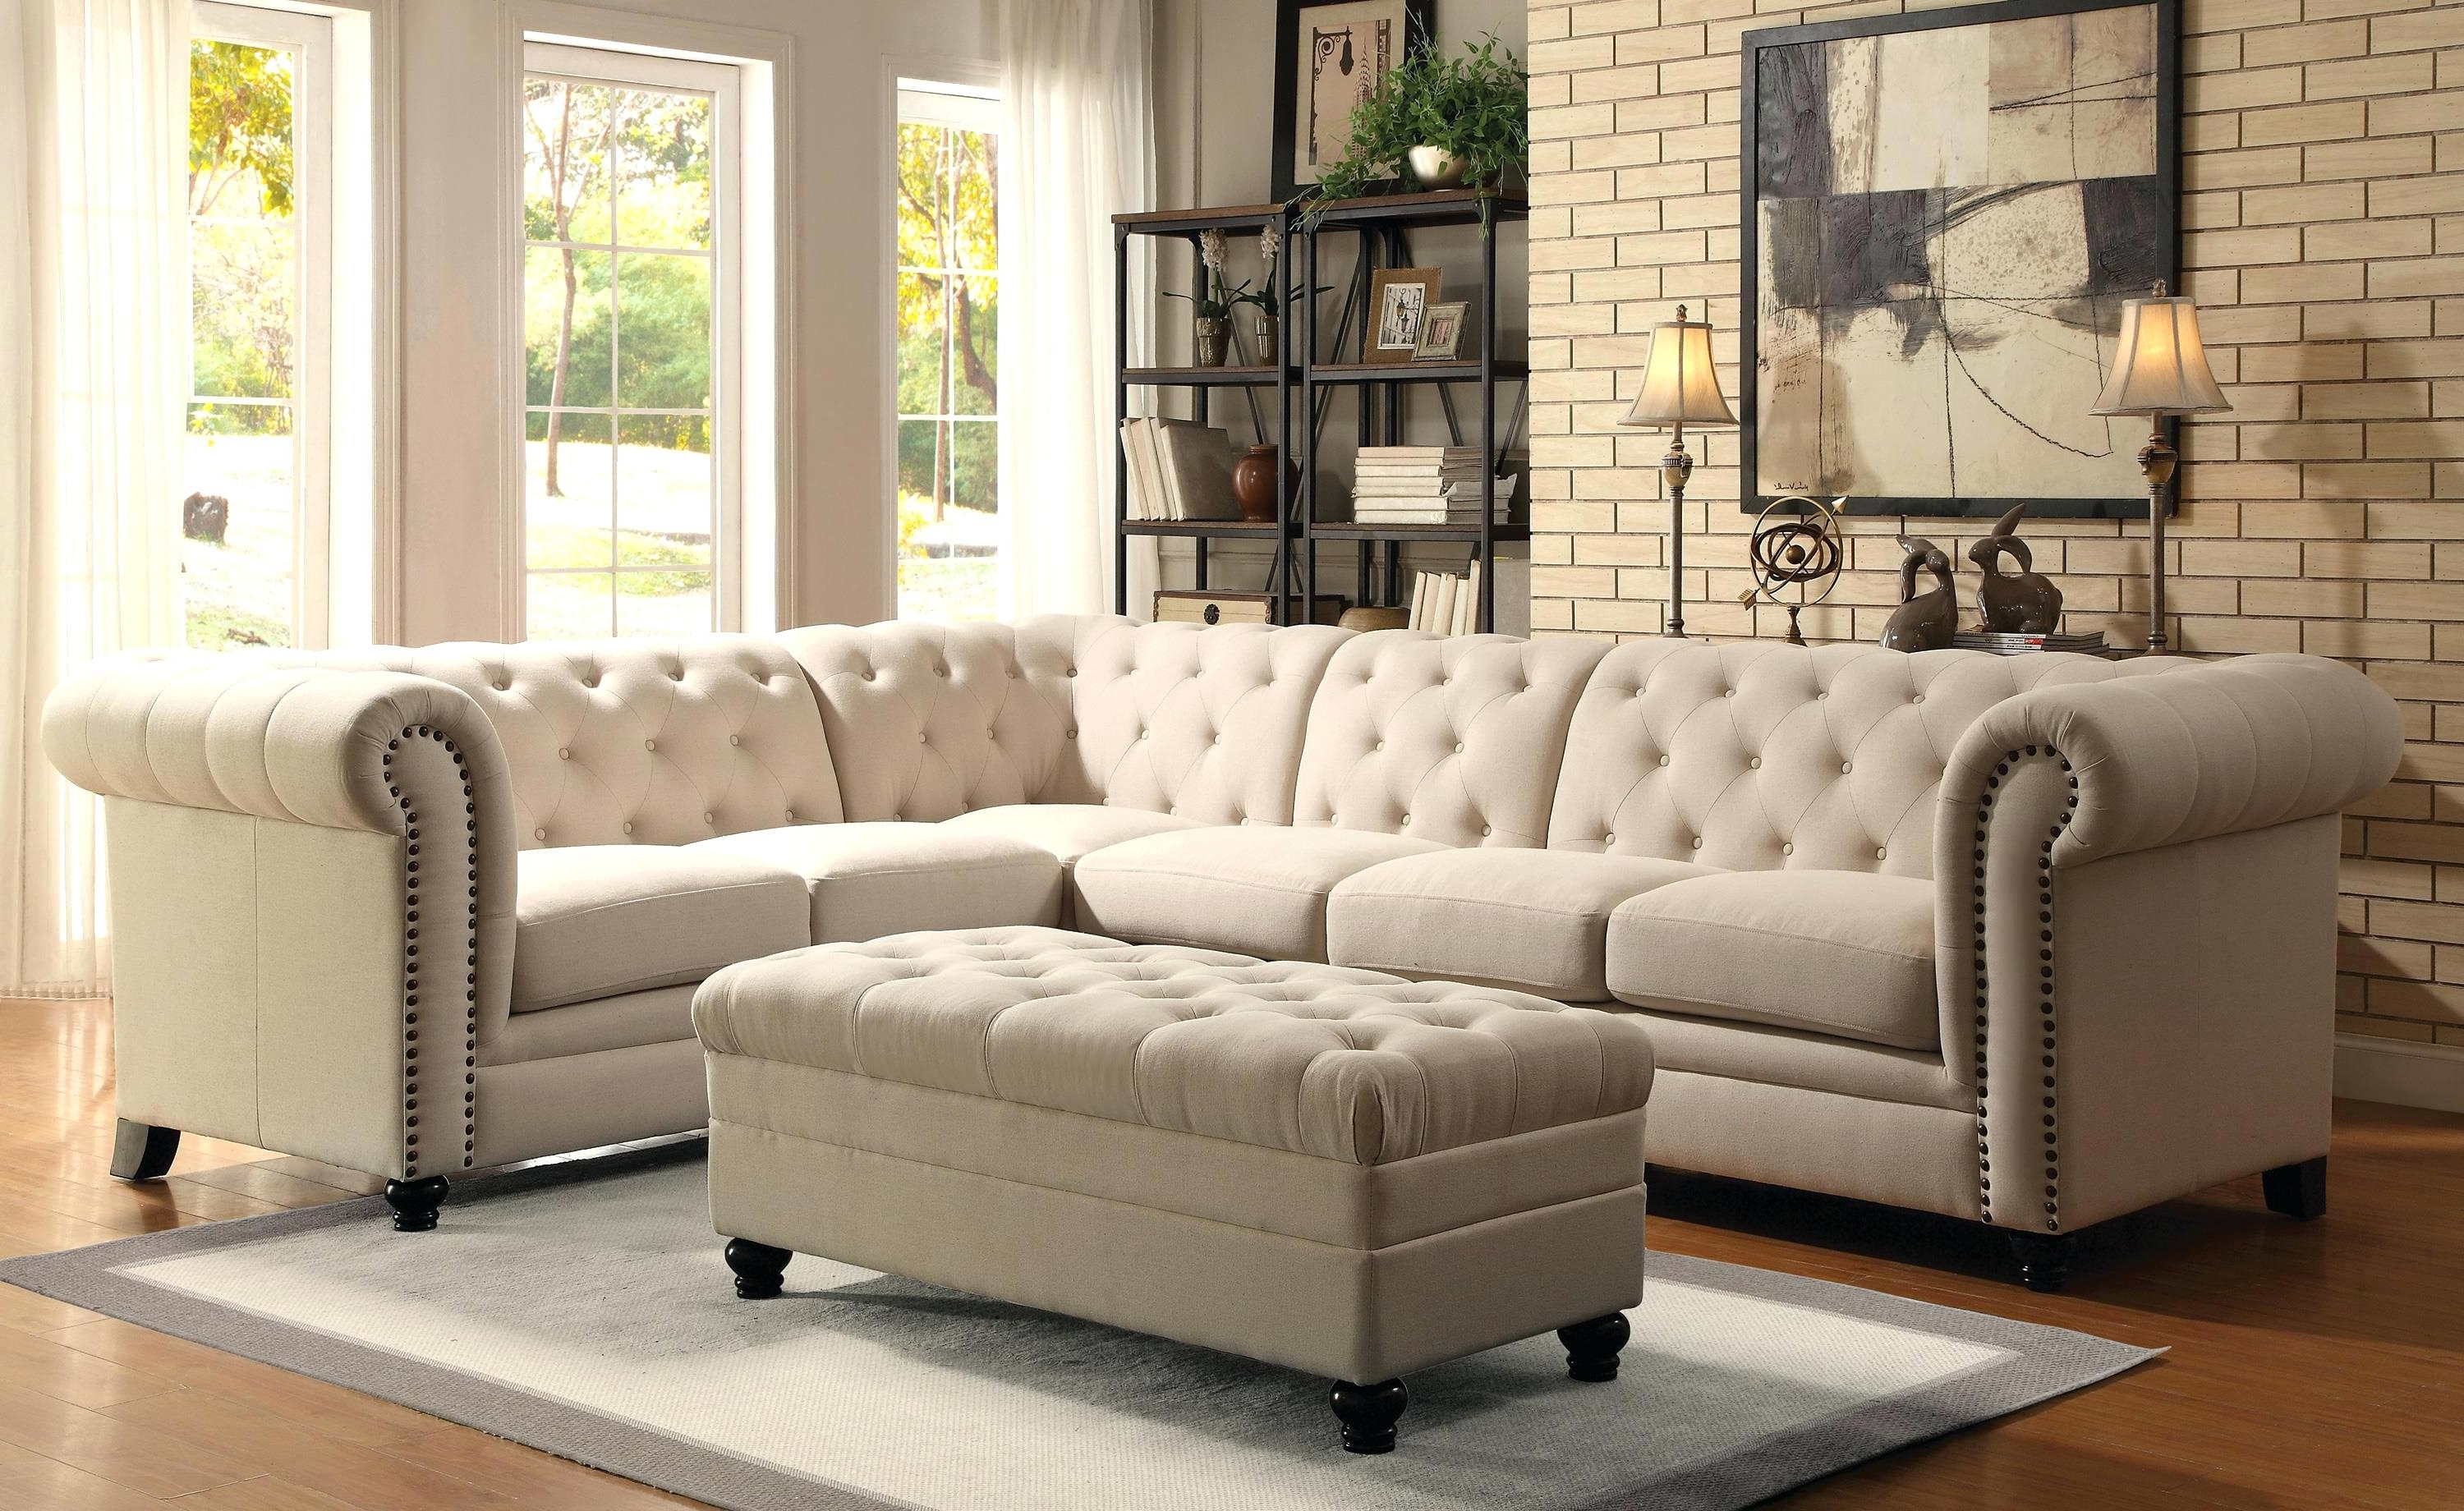 Most Popular Best Sectional Sofa Covers Diy Sofas Dallas Texas Bed Cheap Intended For Dallas Texas Sectional Sofas (View 12 of 15)